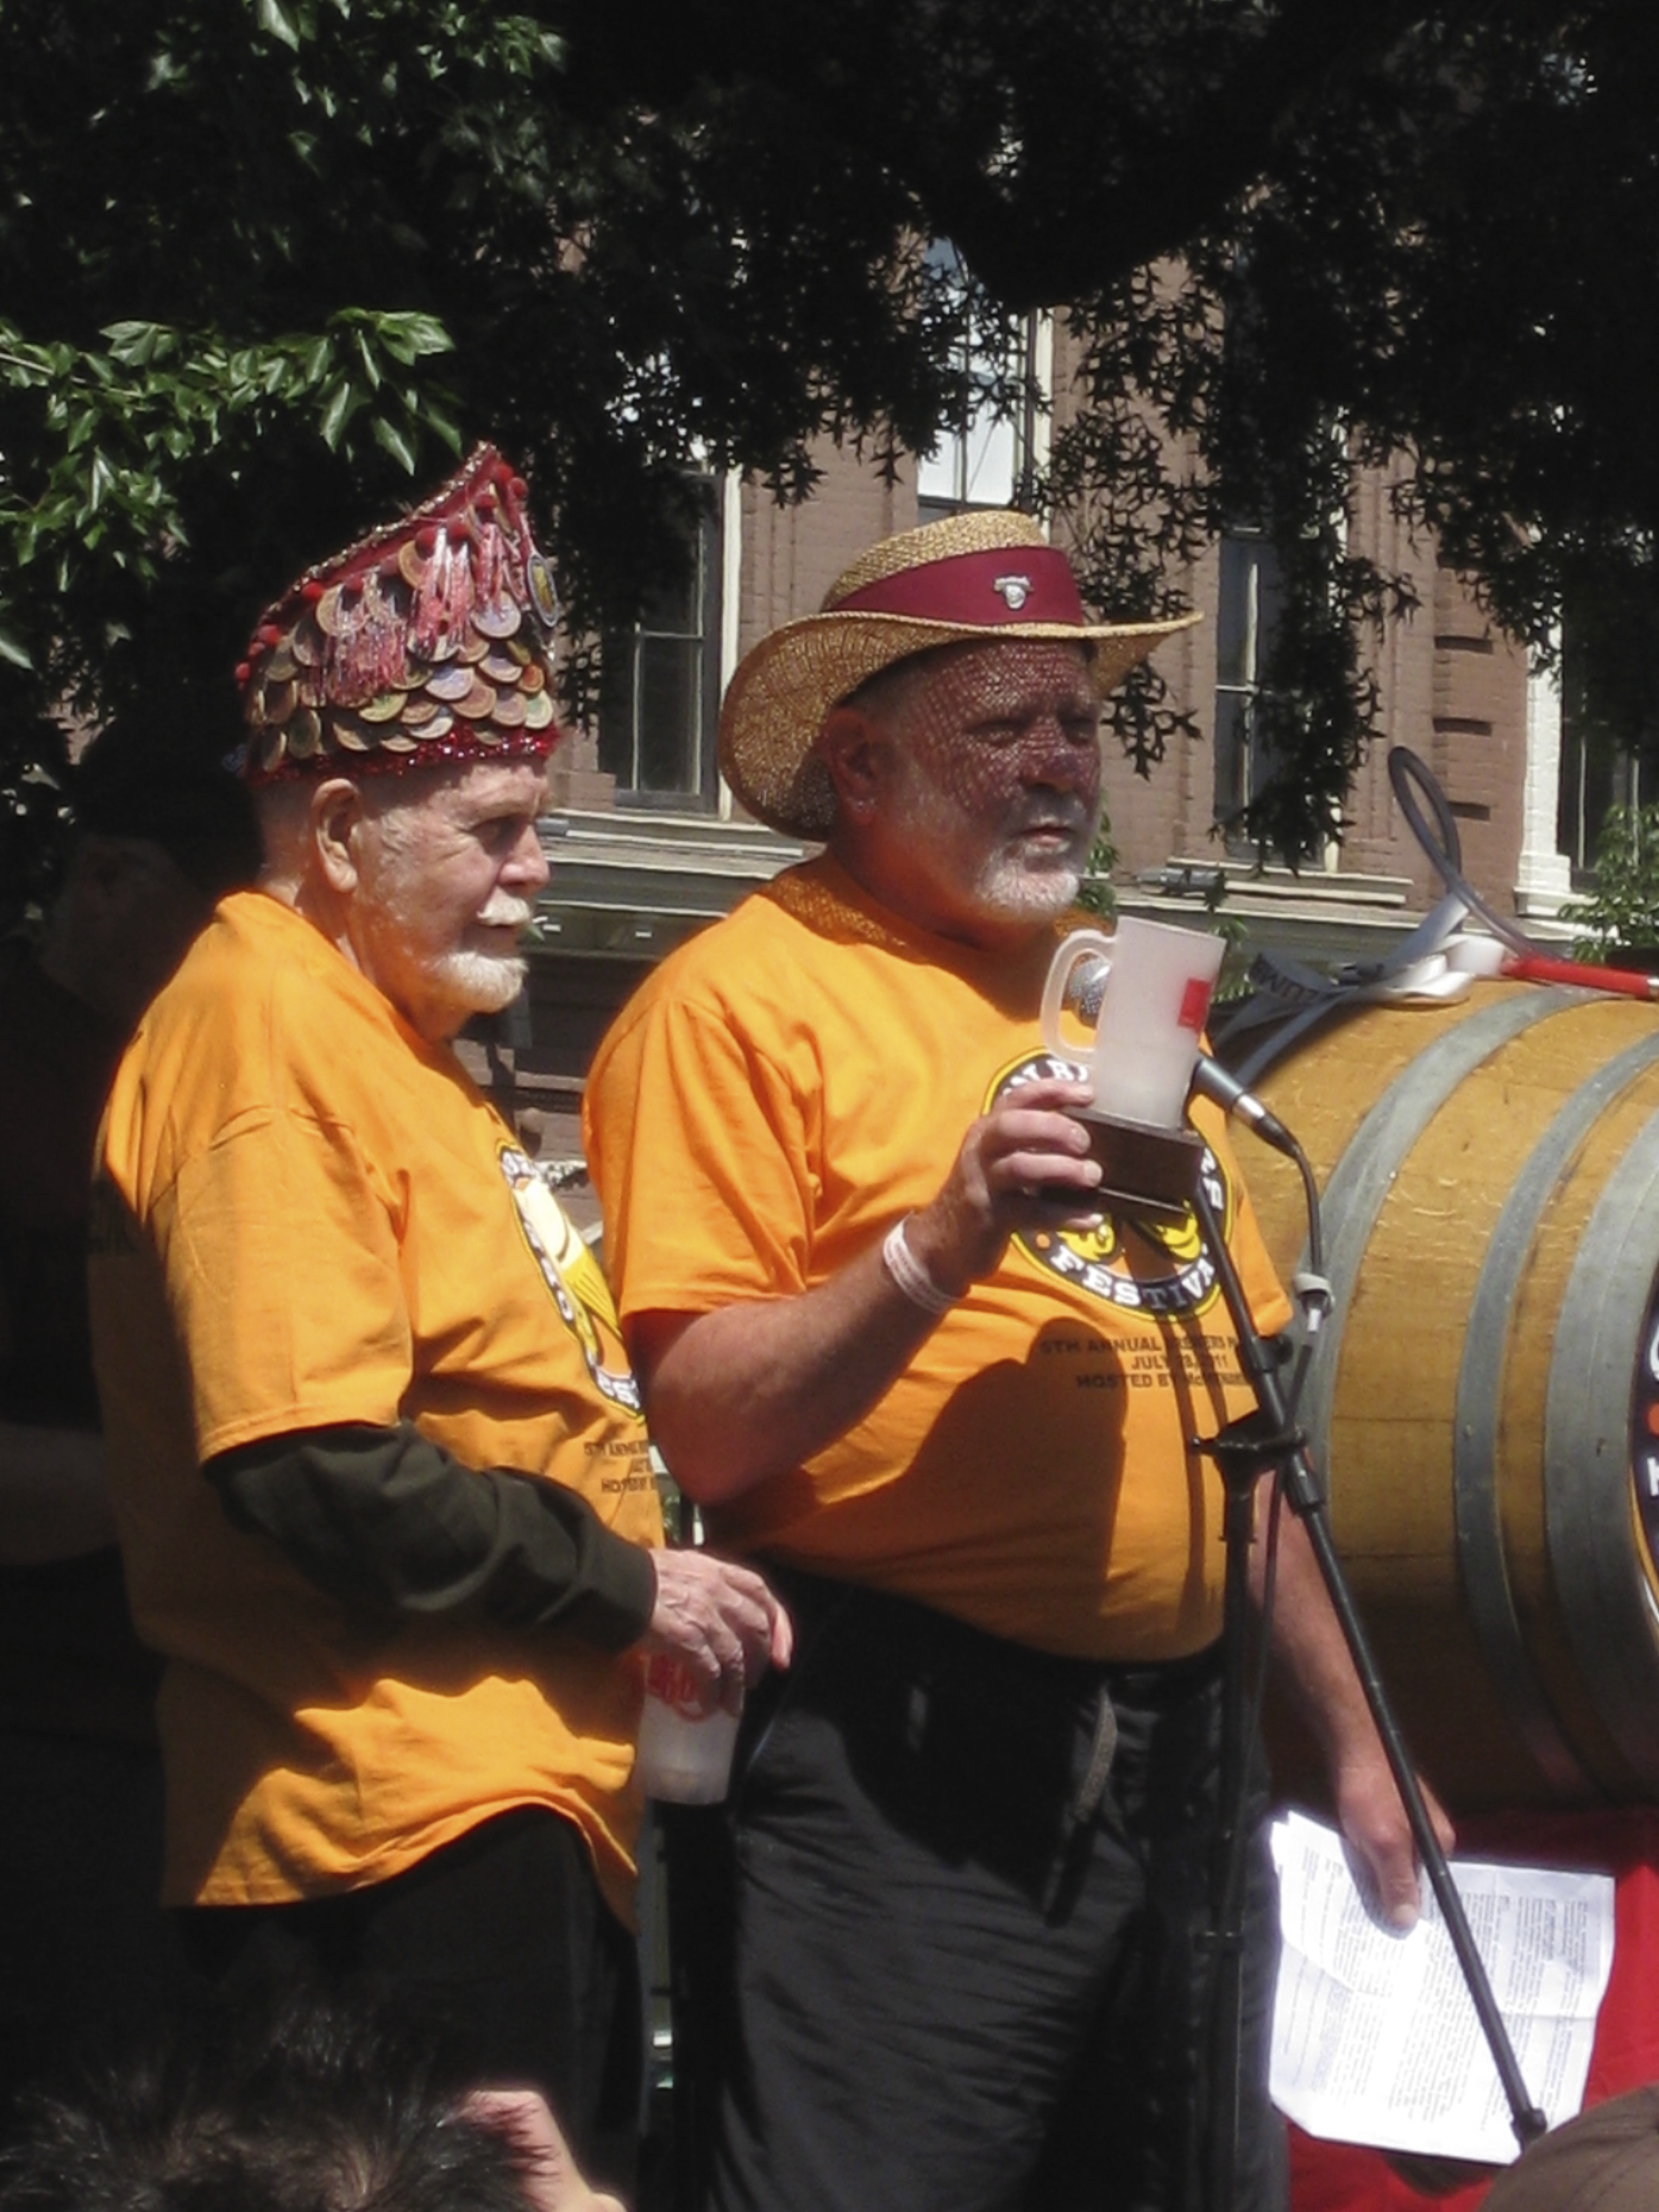 Fred Eckhardt and Art Larrance at 2011 Oregon Brewers Festival.